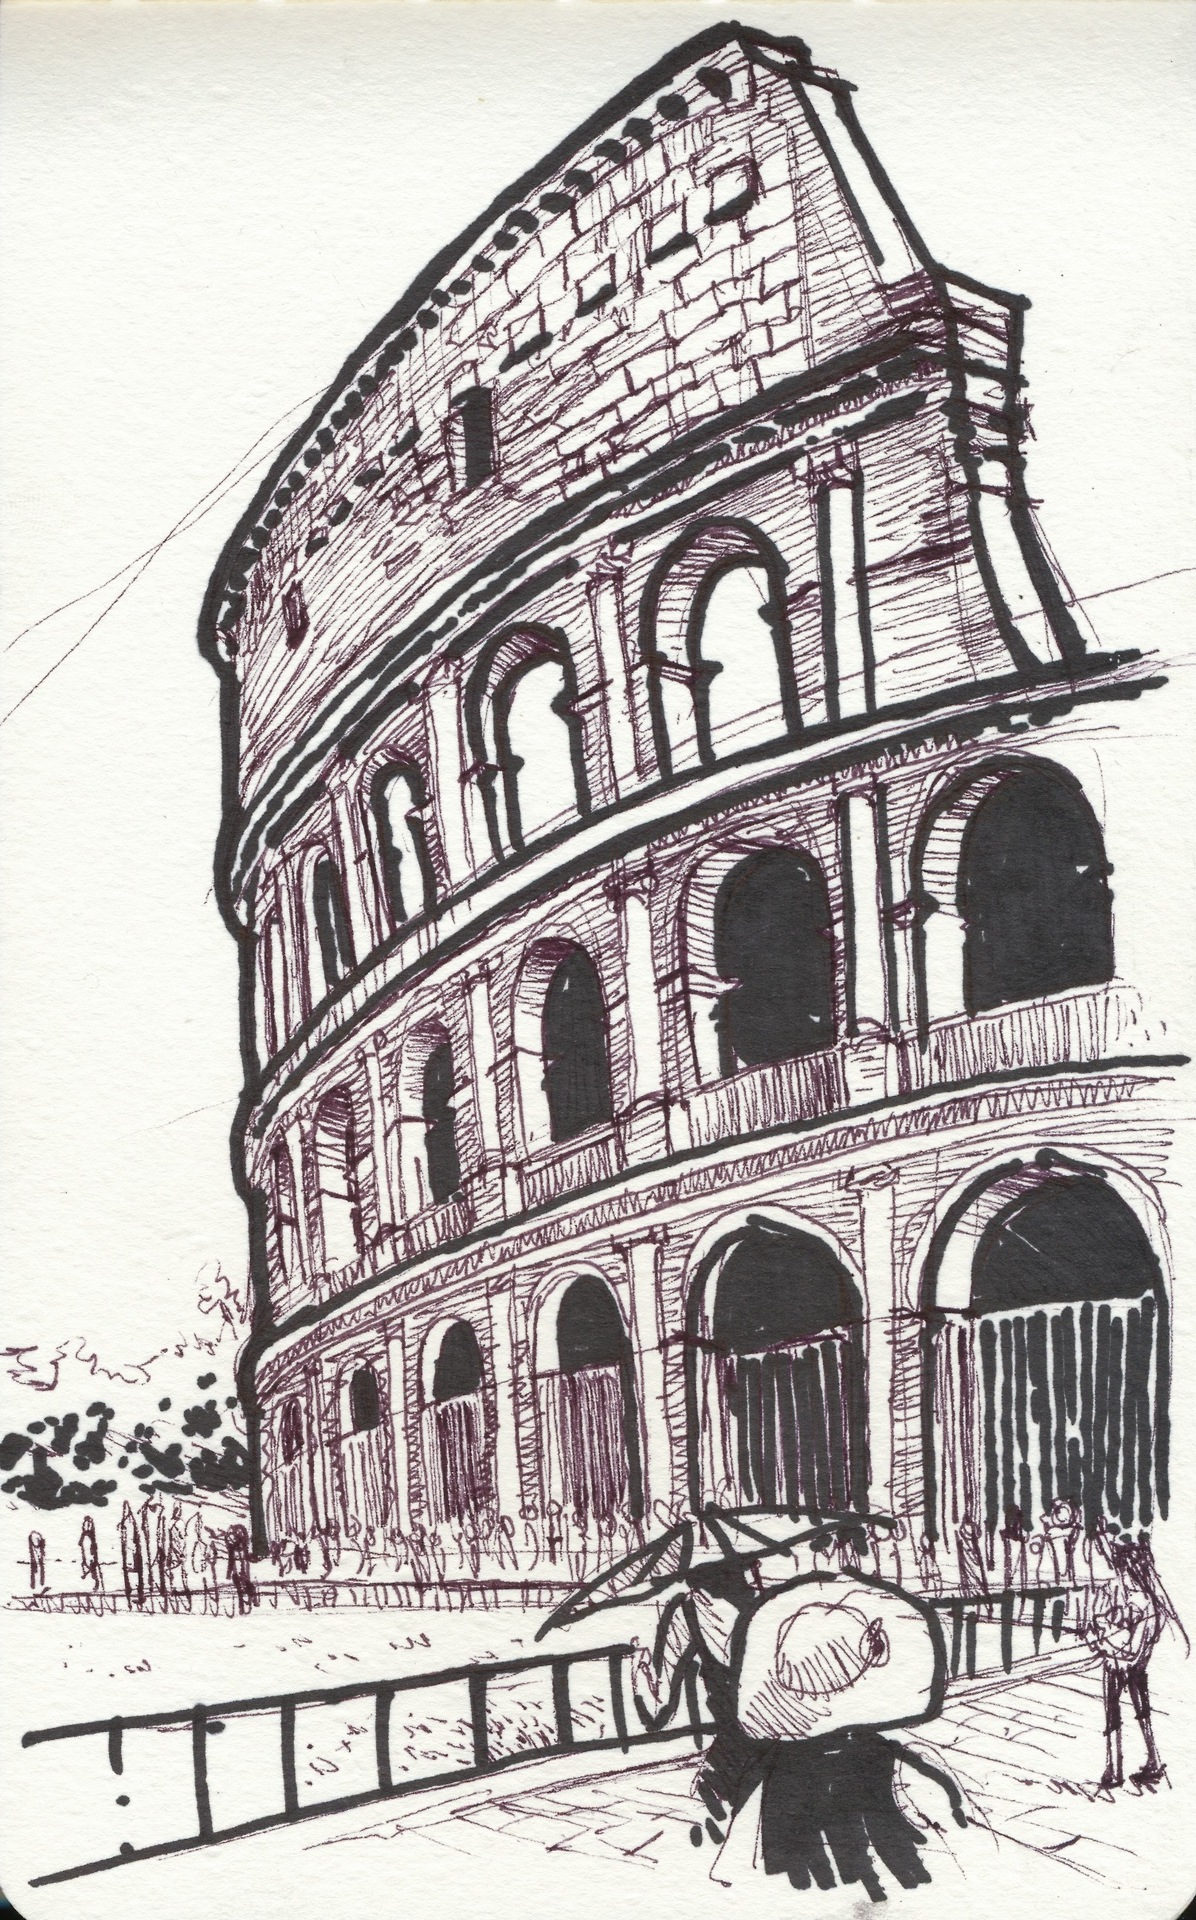 I am going on vacation soon and I decided to practice sketching by drawing the Colosseum from one of my pictures from last year. Enjoy.